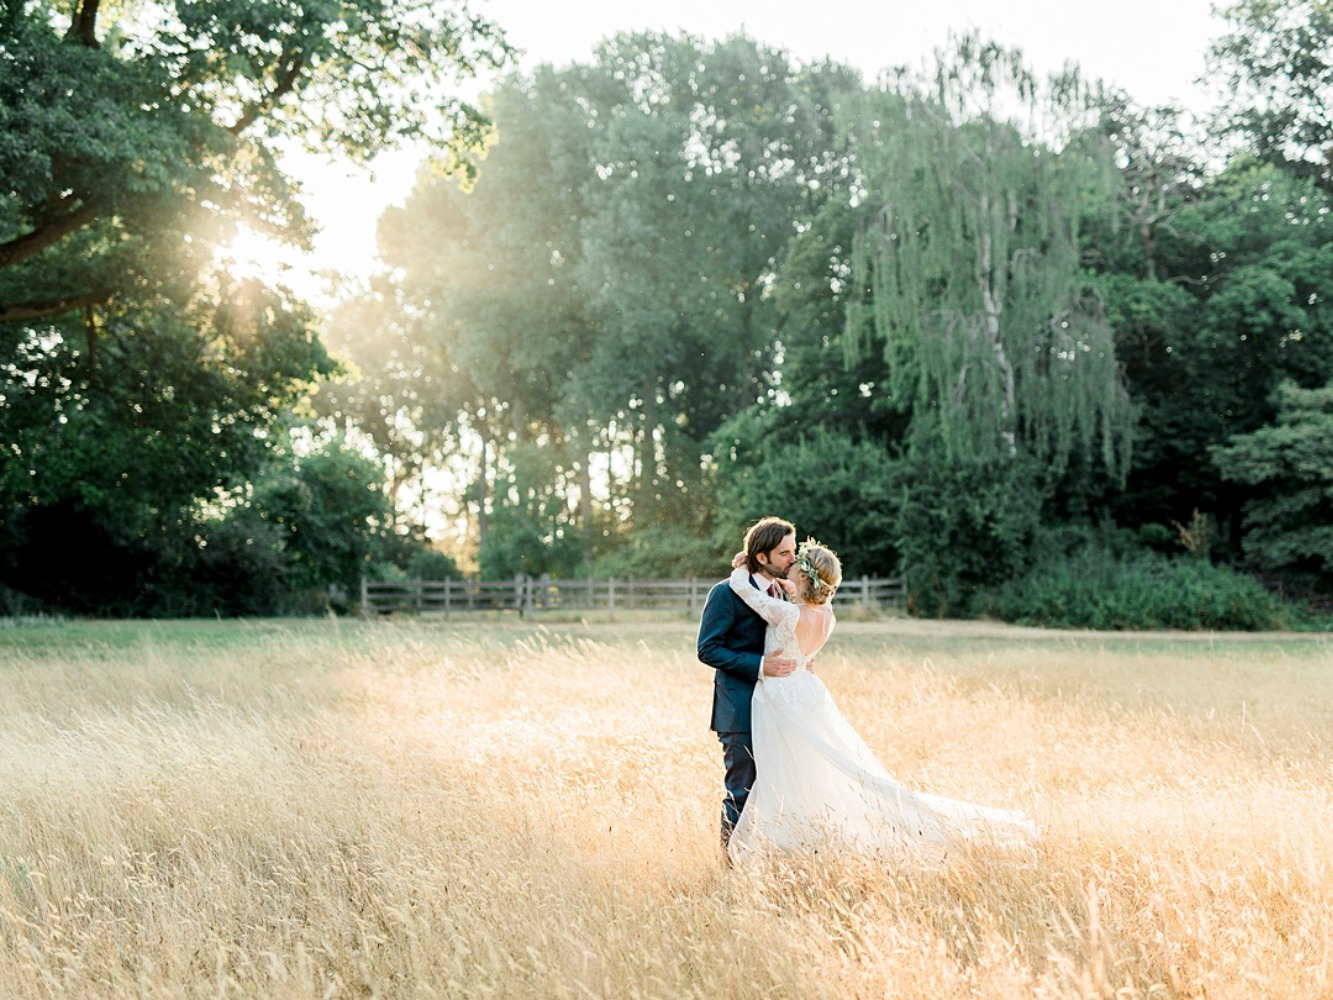 Beautiful Disney inspired wedding